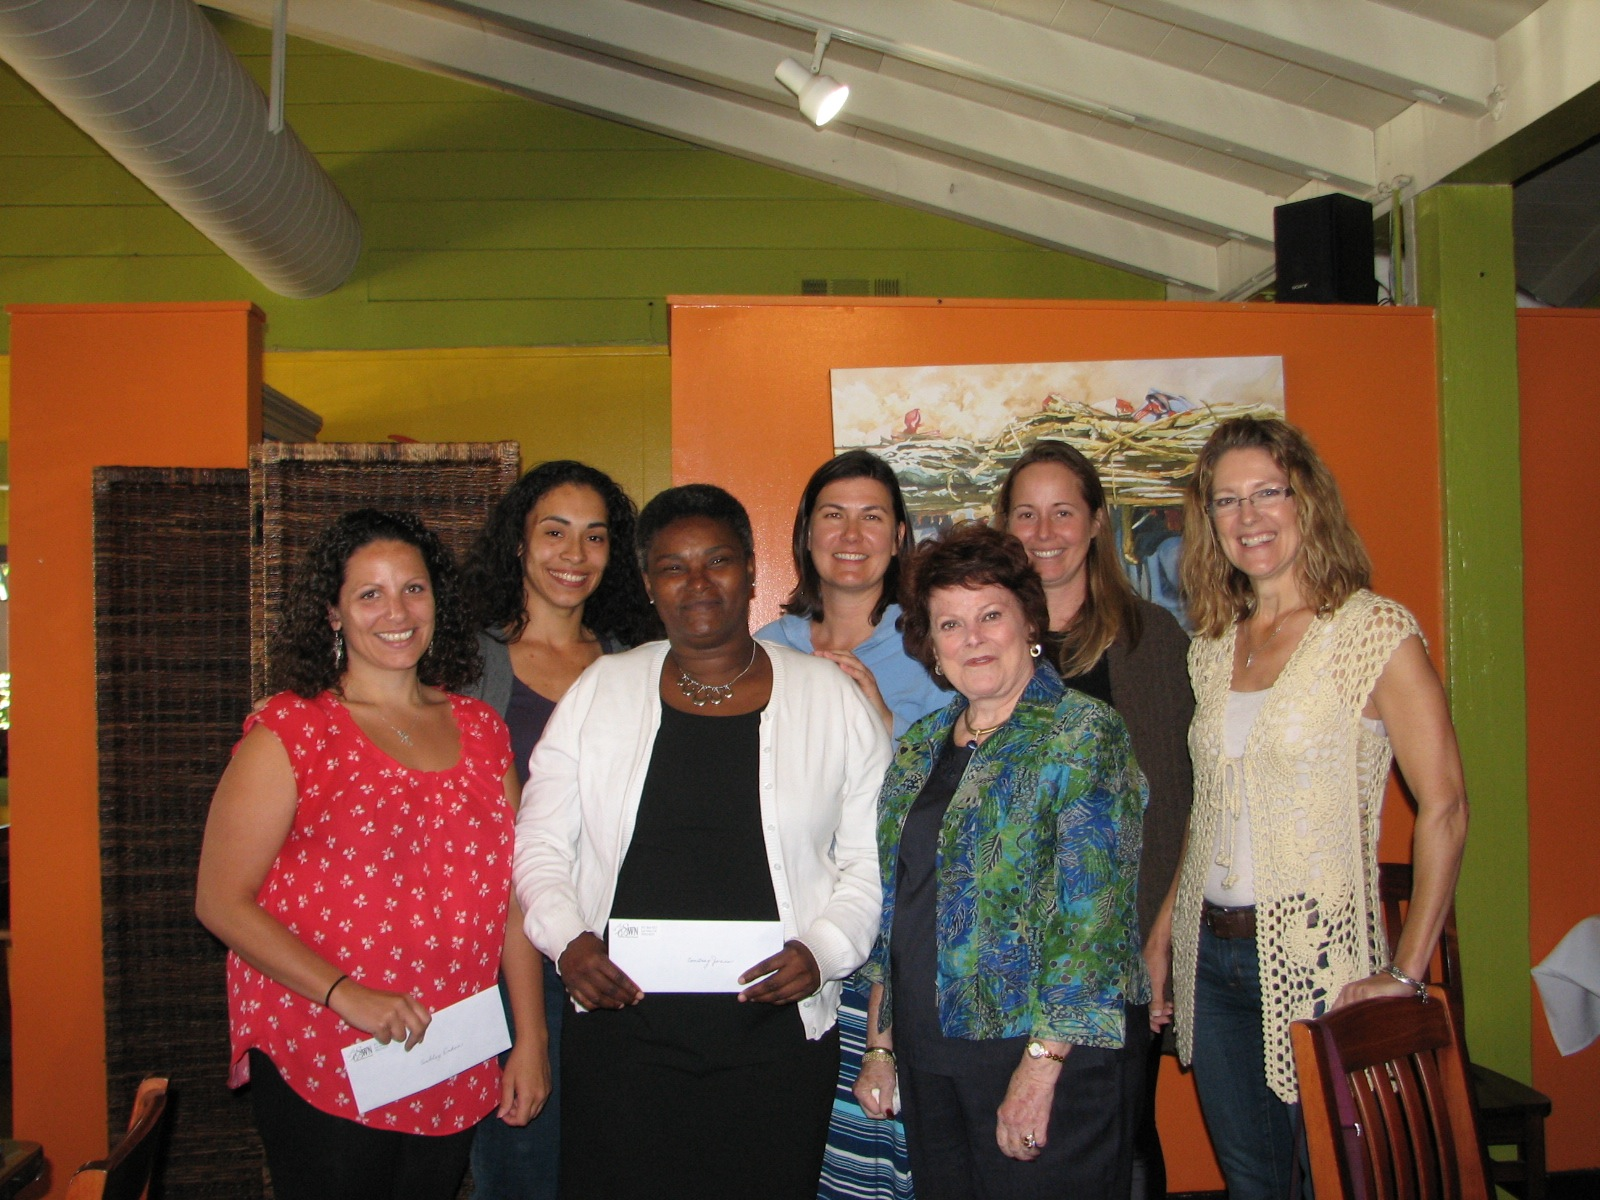 Scholarship winners (l. to r.) Ashley Erden, Sabrina Bussell, Courtnay Jones with Scholarship committee Christine Womack, Alyce Thorp, AJ Fudge and Monica Randeen. (not pictured Scholarship winner Jimi McFarlin)